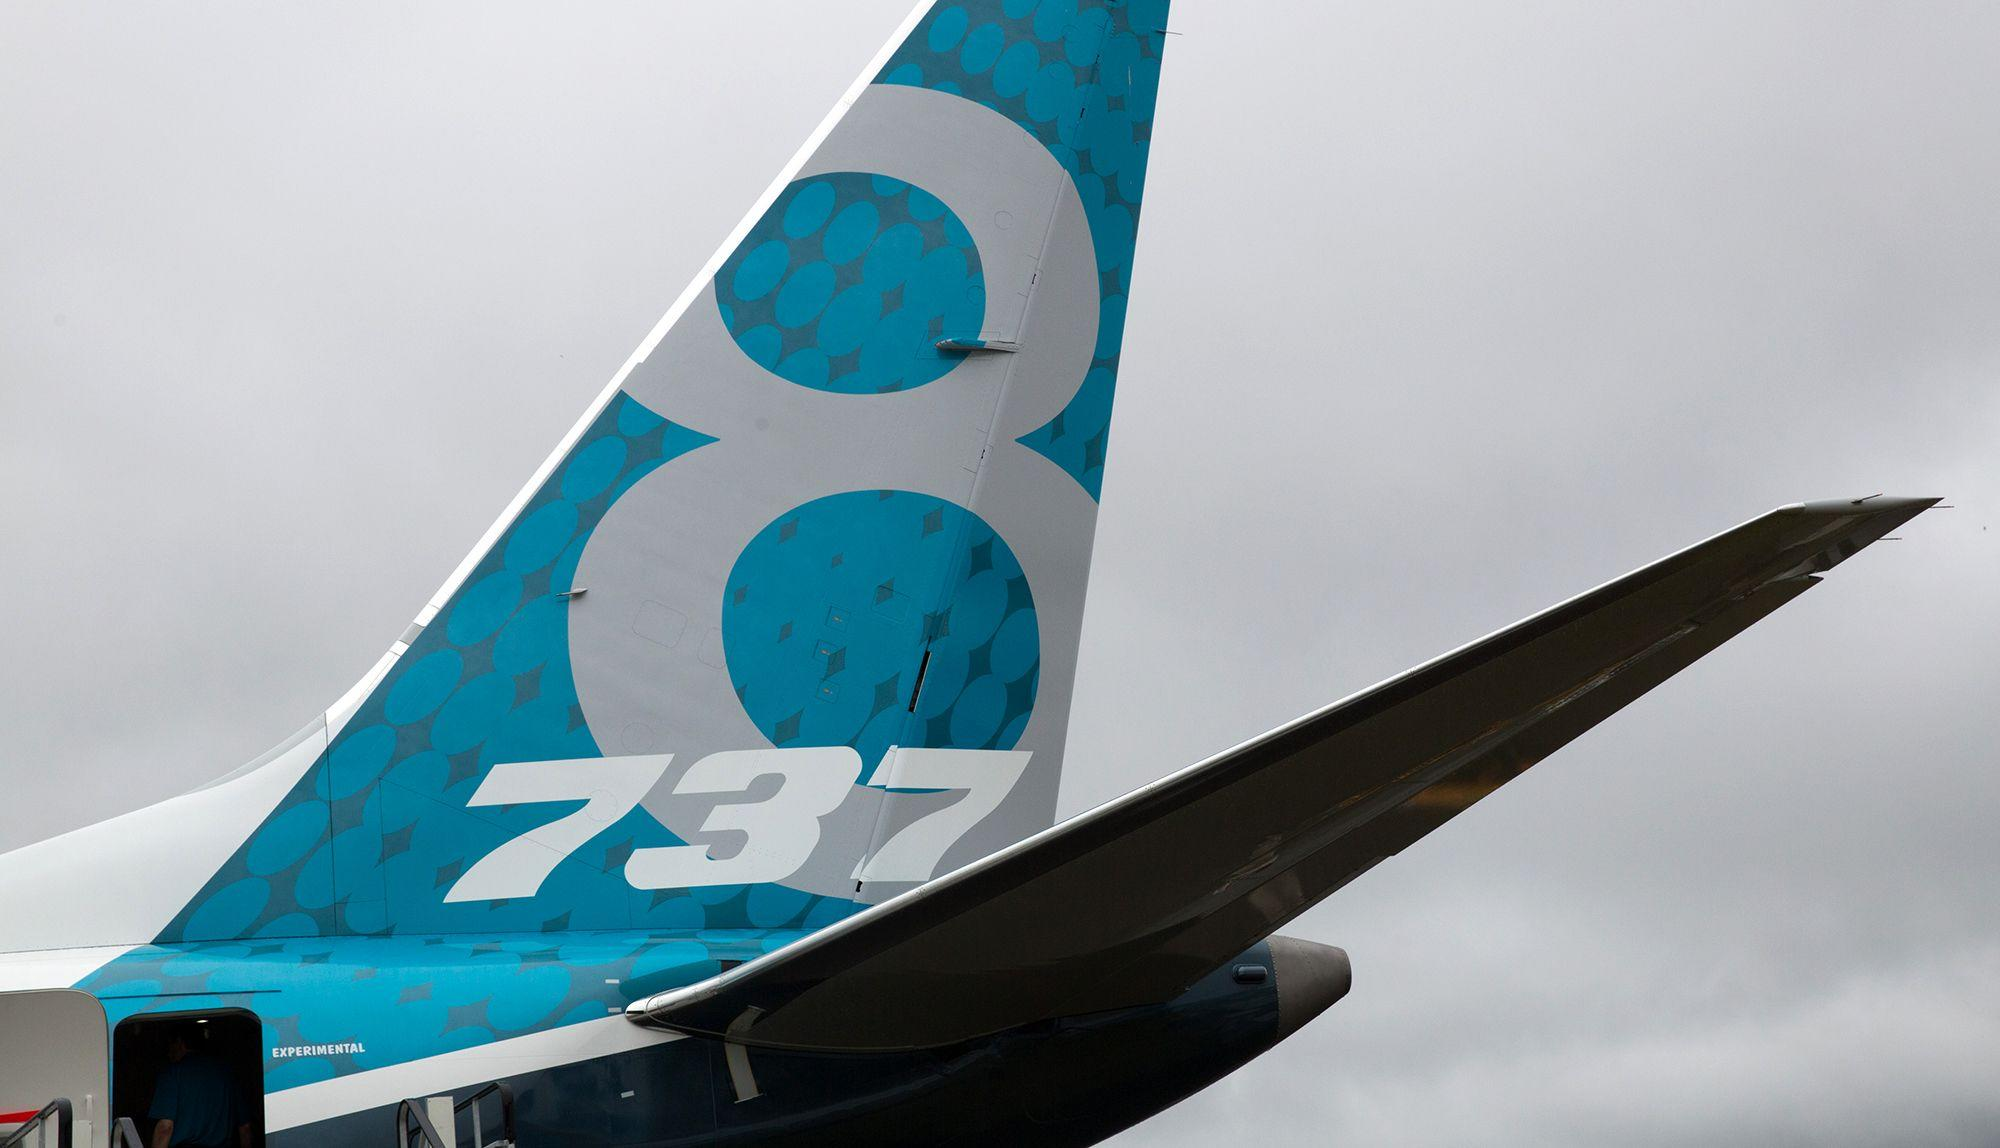 Senators grill Boeing CEO on 737 Max jet